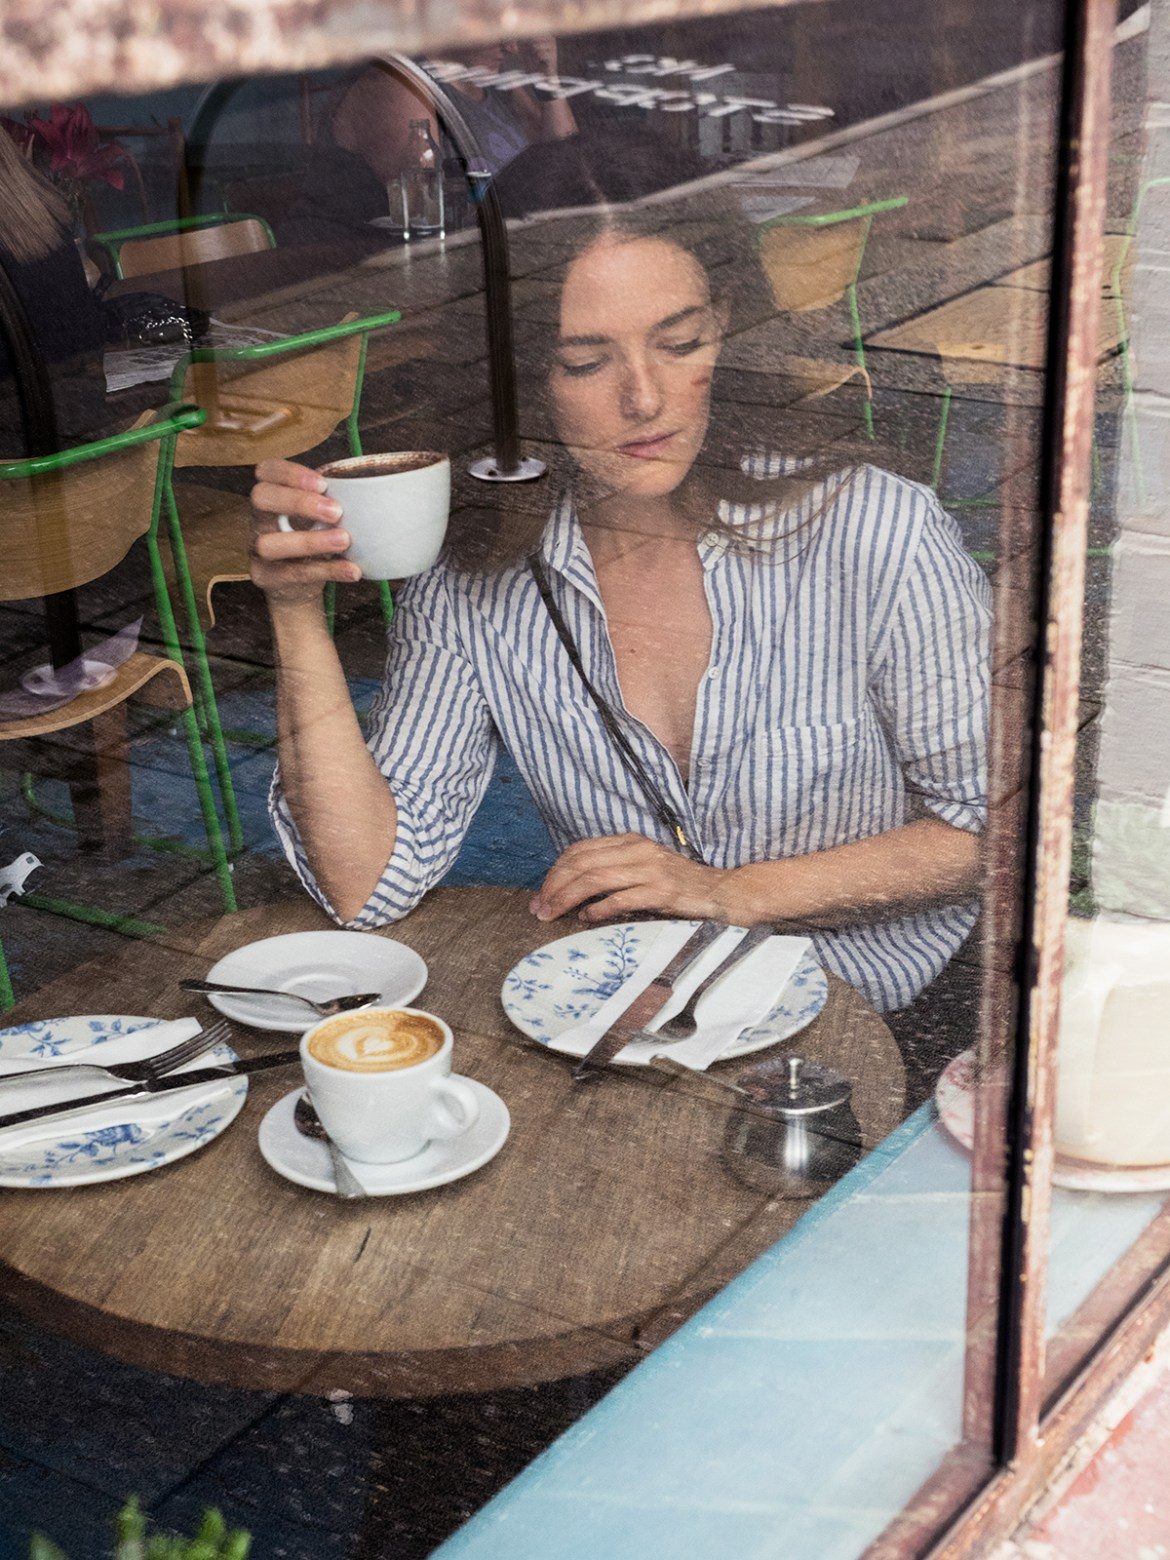 Inspiring Wit fashion blogger from Australia in the one shirt and tom ford bag 2017 window coffee